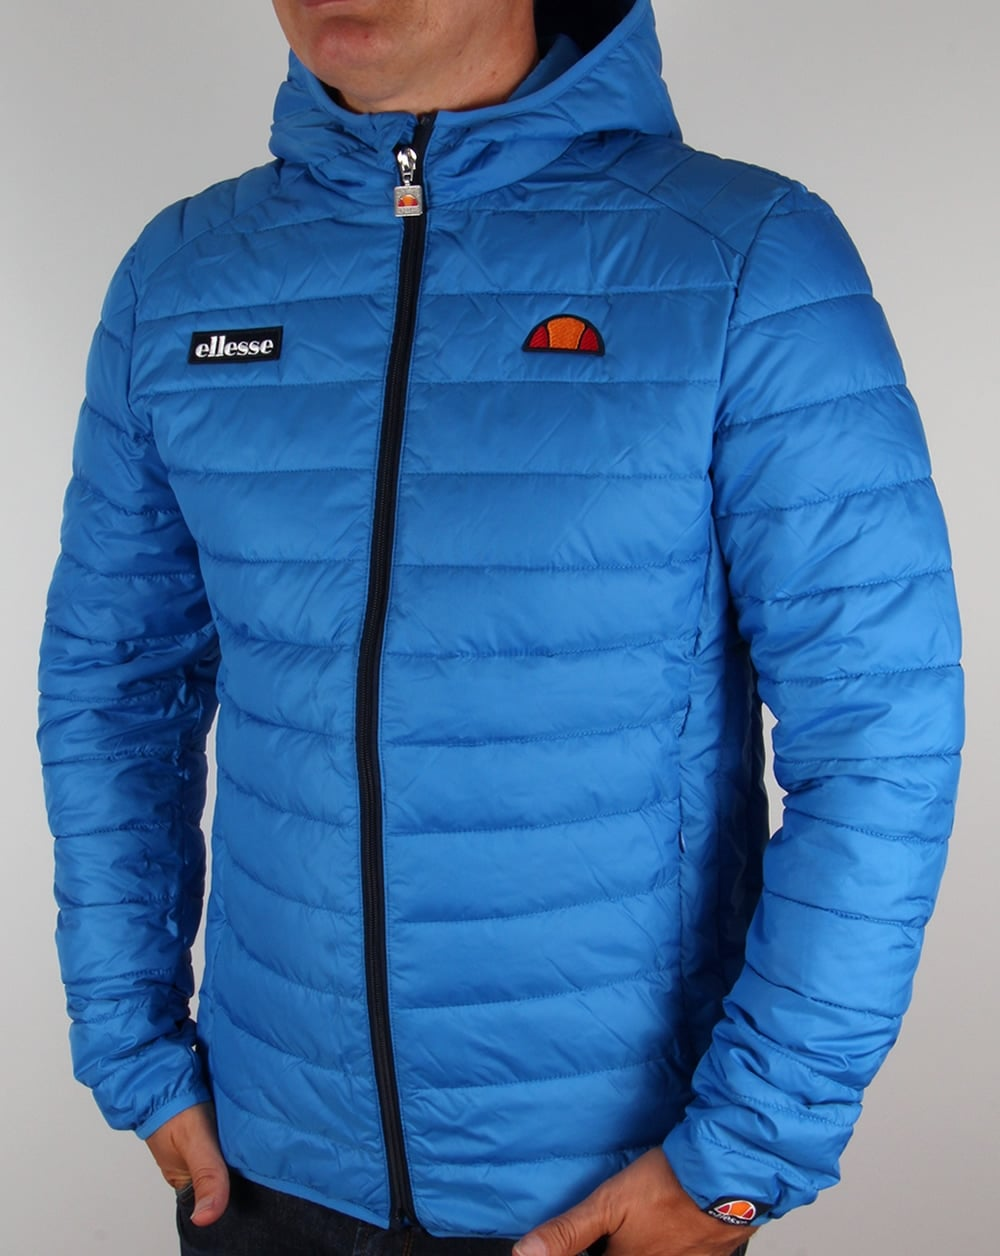 ellesse lombardy blue jacket bubble hooded french puffer ski coat. Black Bedroom Furniture Sets. Home Design Ideas